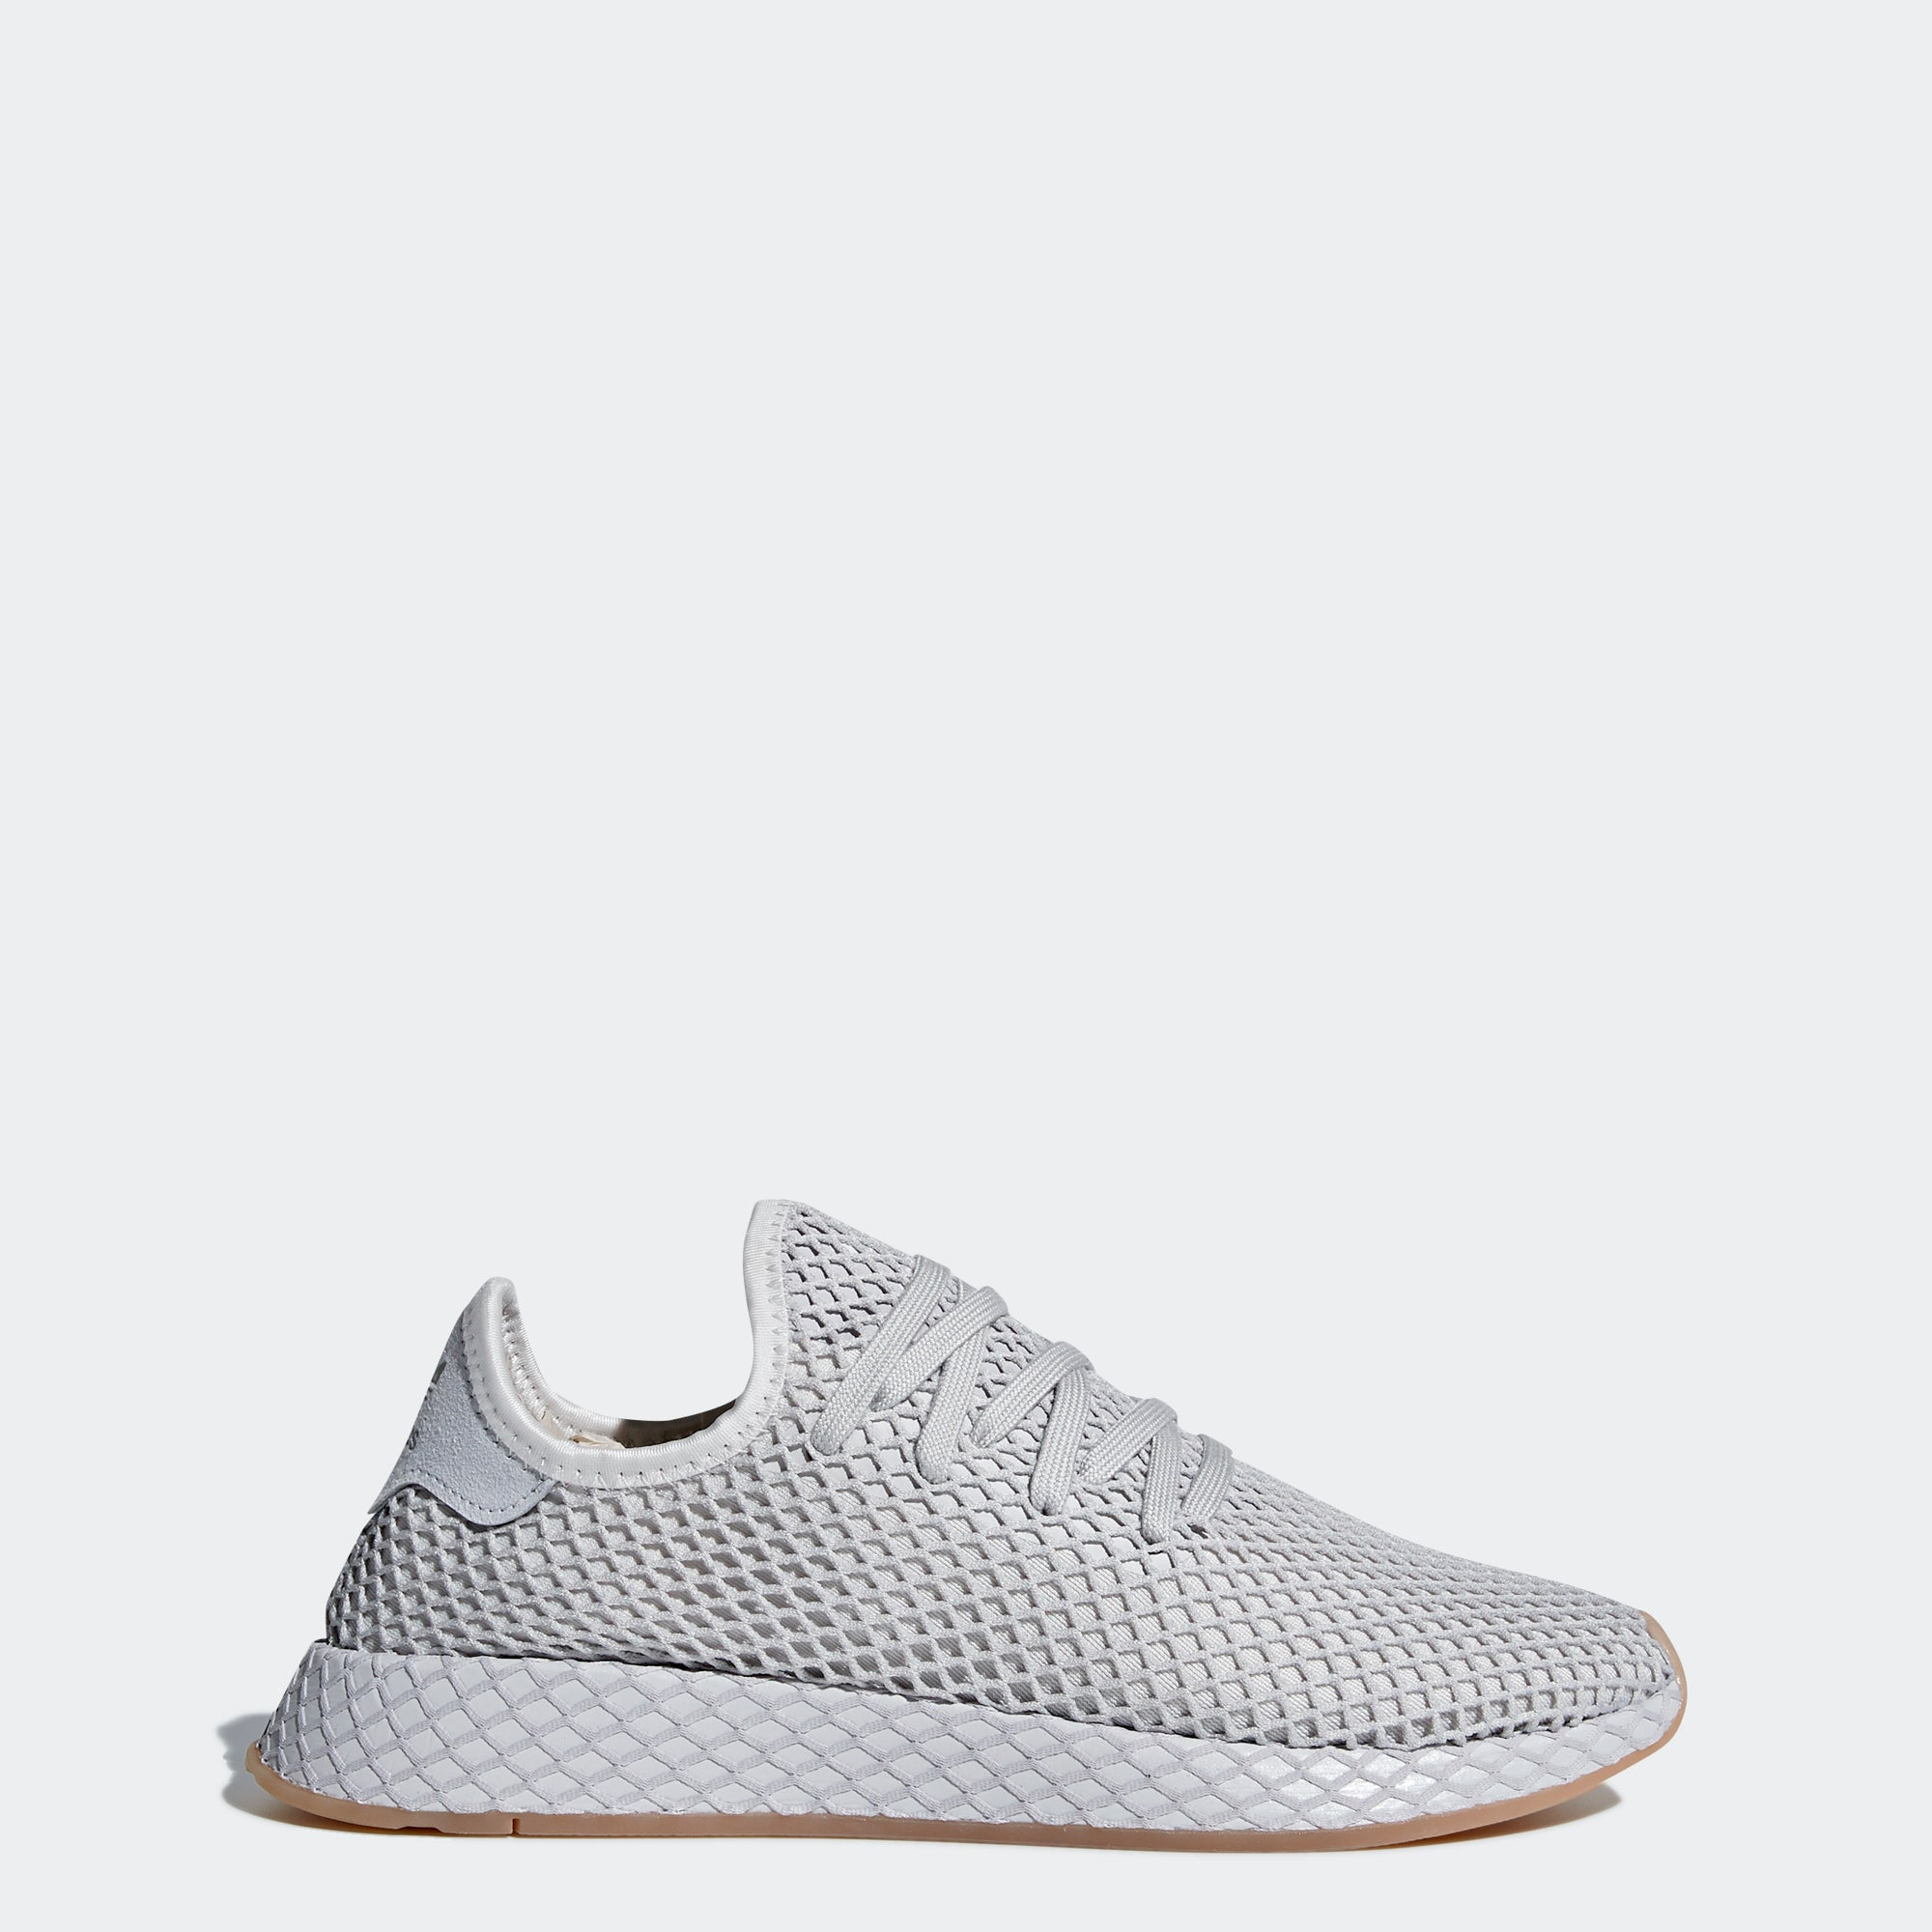 Basket Adidas Deerupt Runner gris clair Grey Three on feet